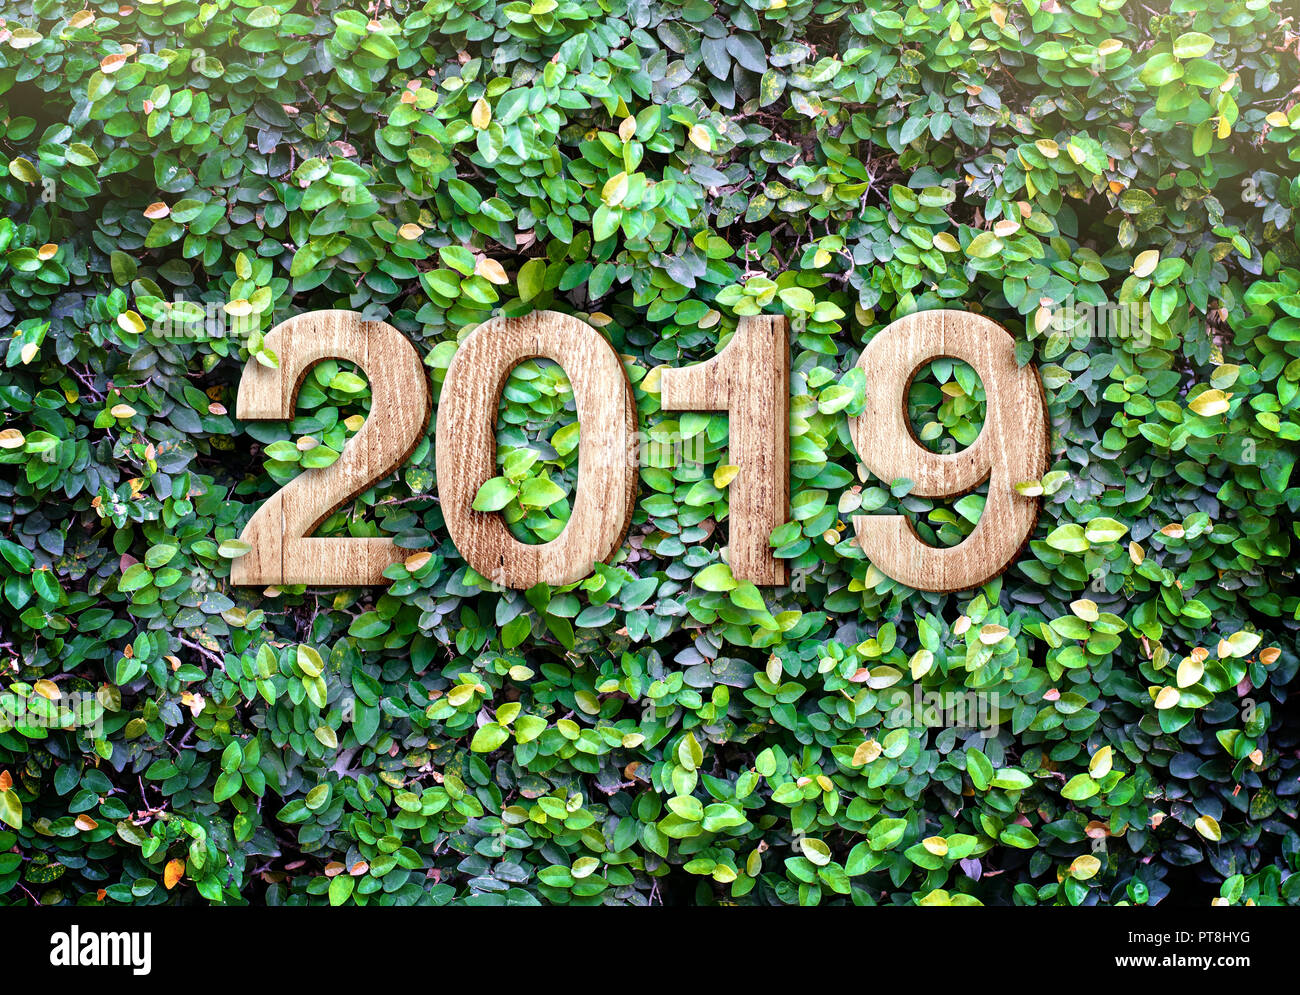 2019 happy new year wood texture number on green leaves wall background nature eco conceptorganic greeting card holidayleave copy space for adding t